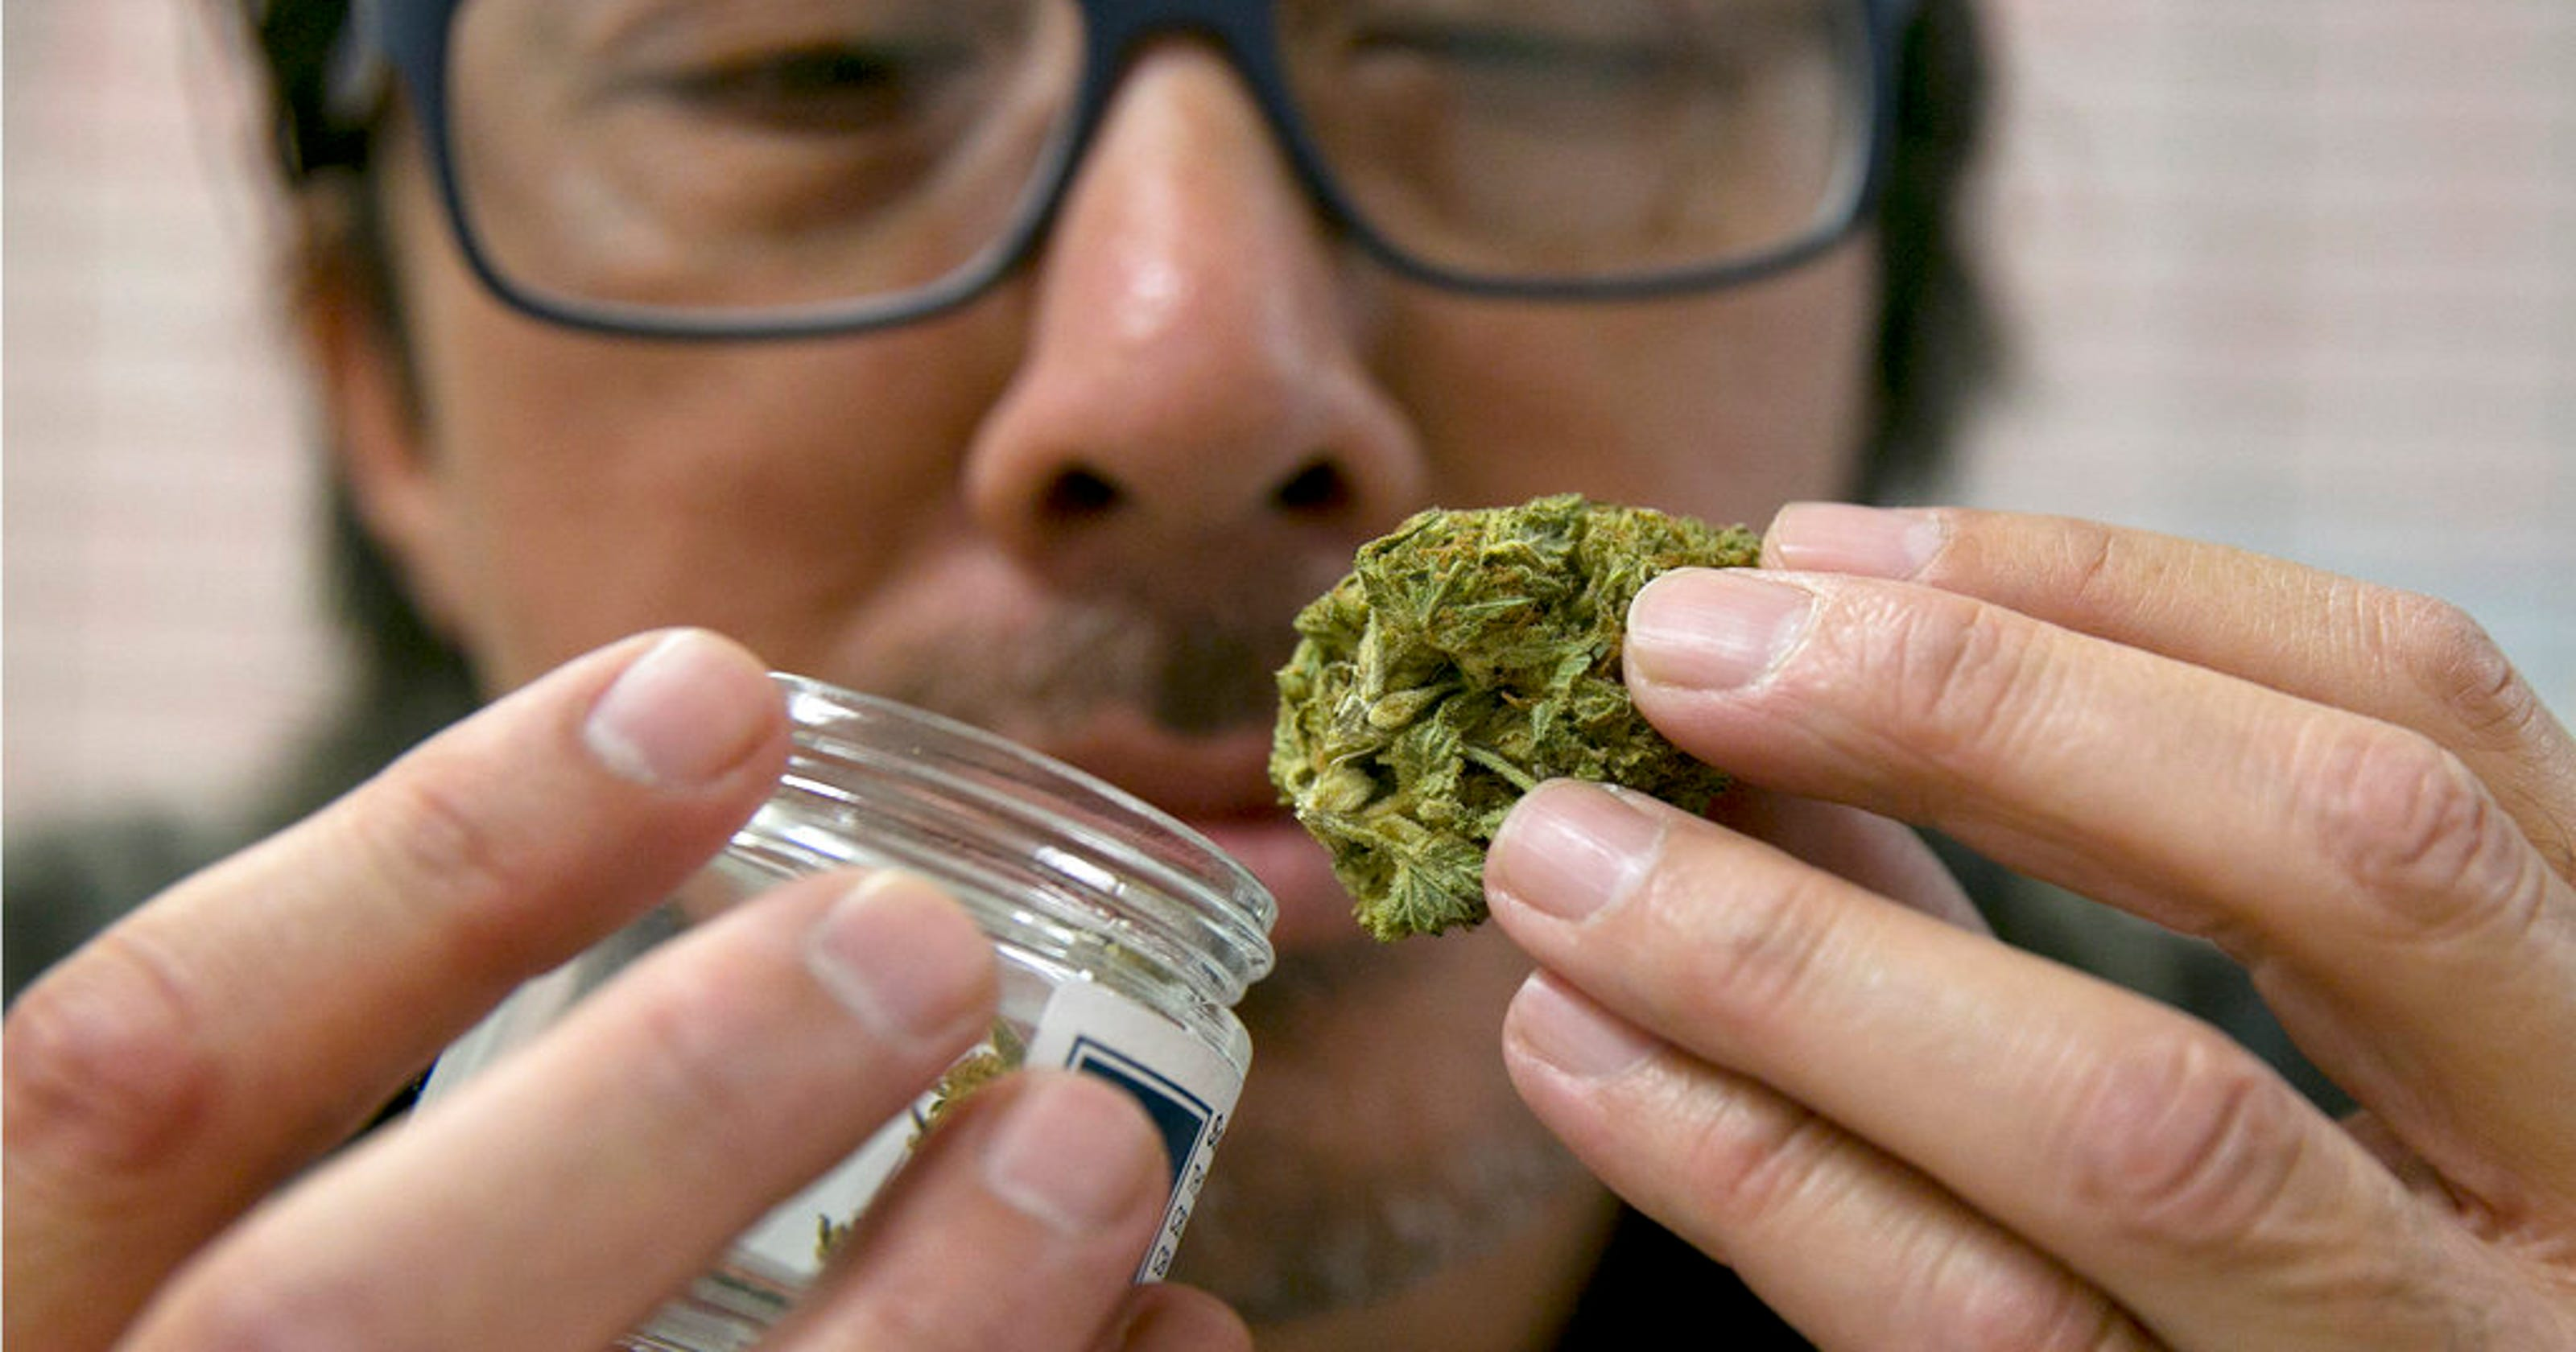 Want to work with pot? How to get a job in Nevada's cannabis